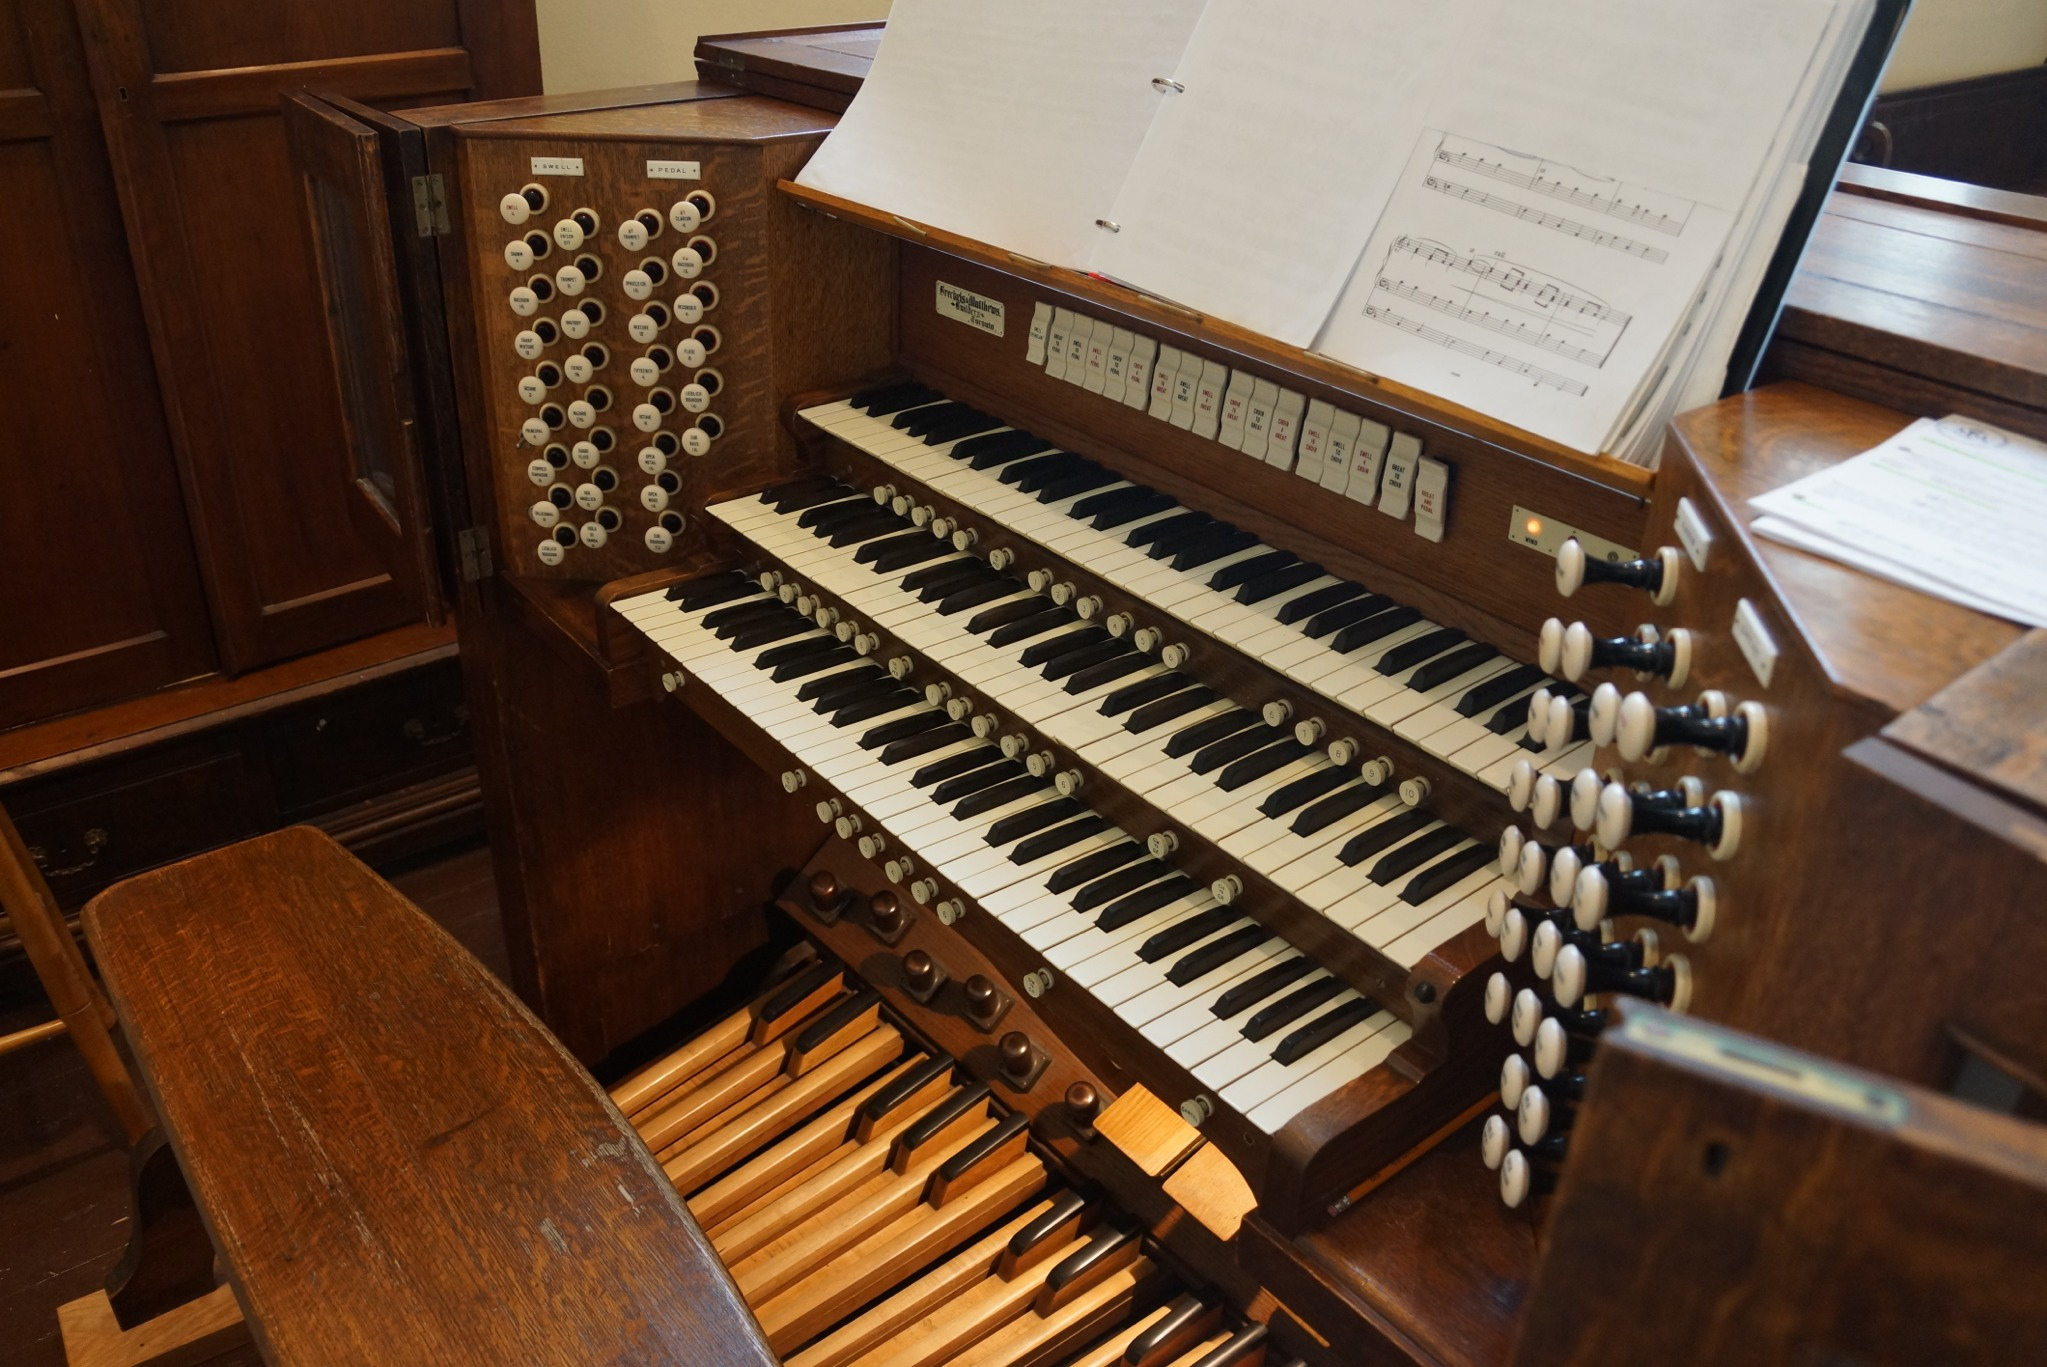 The organ of the Church of St. Mary Magdalene, built in 1906 by Breckels and Matthews.